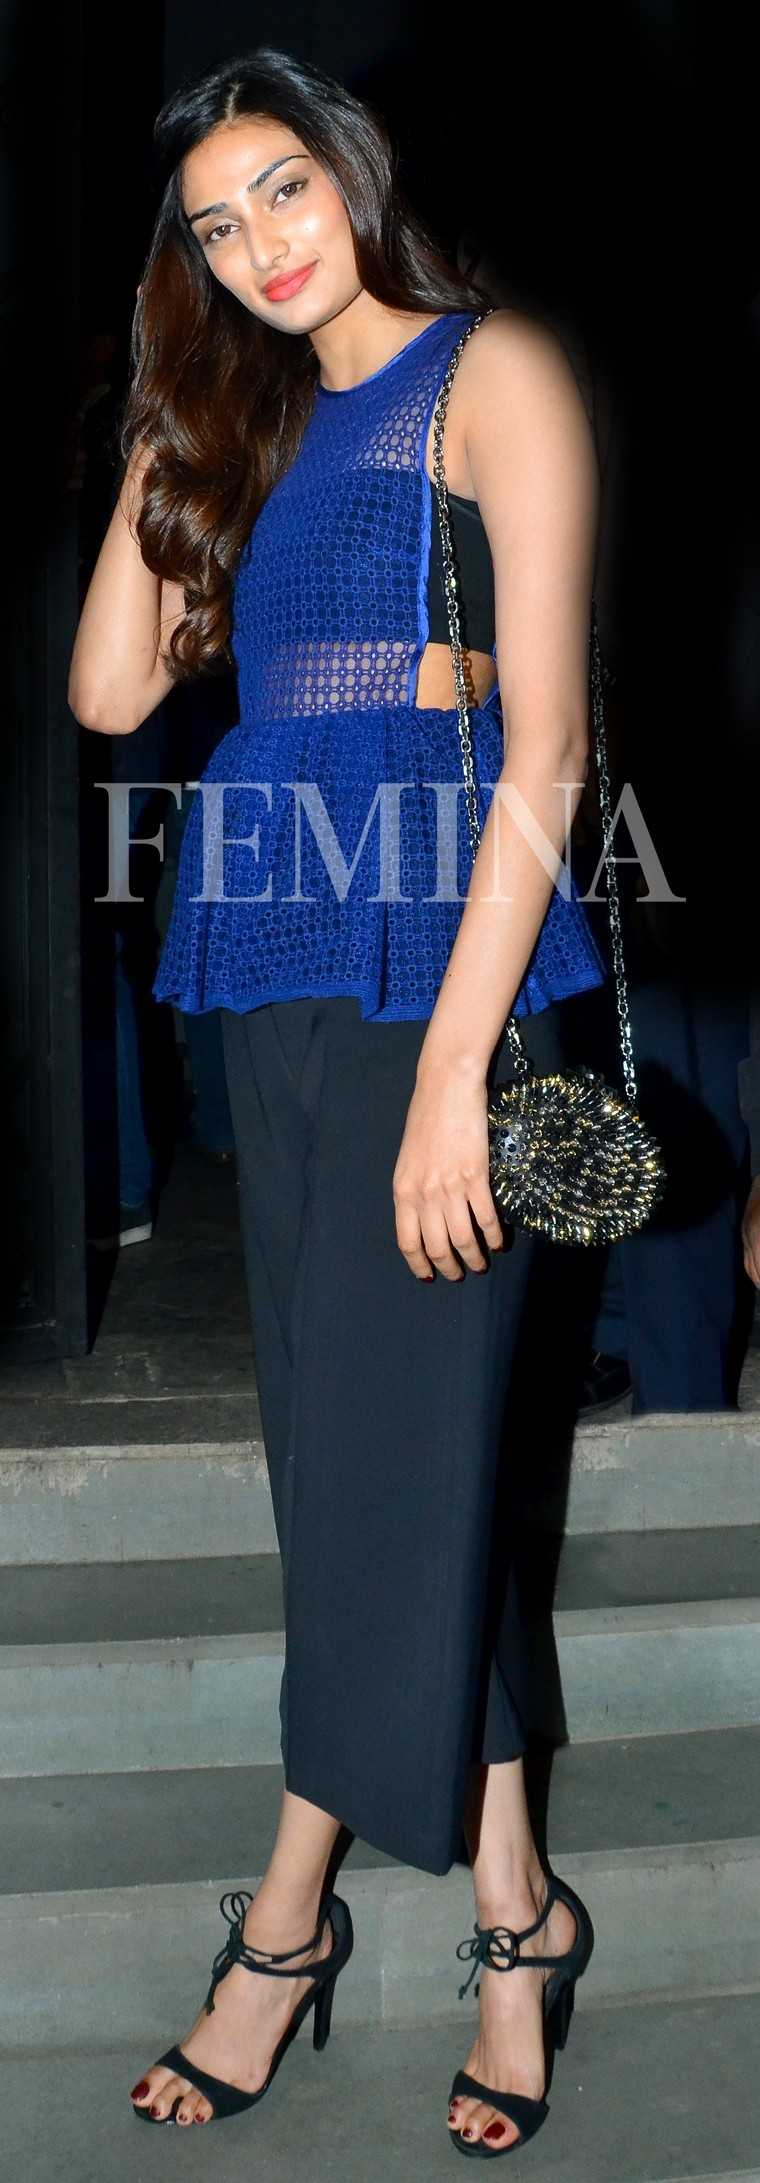 Athiya Shetty Athiya takes her culottes for a night out in this Self-Portrait outfit teamed with a Christian Louboutin bag and ankle-strap sandals.